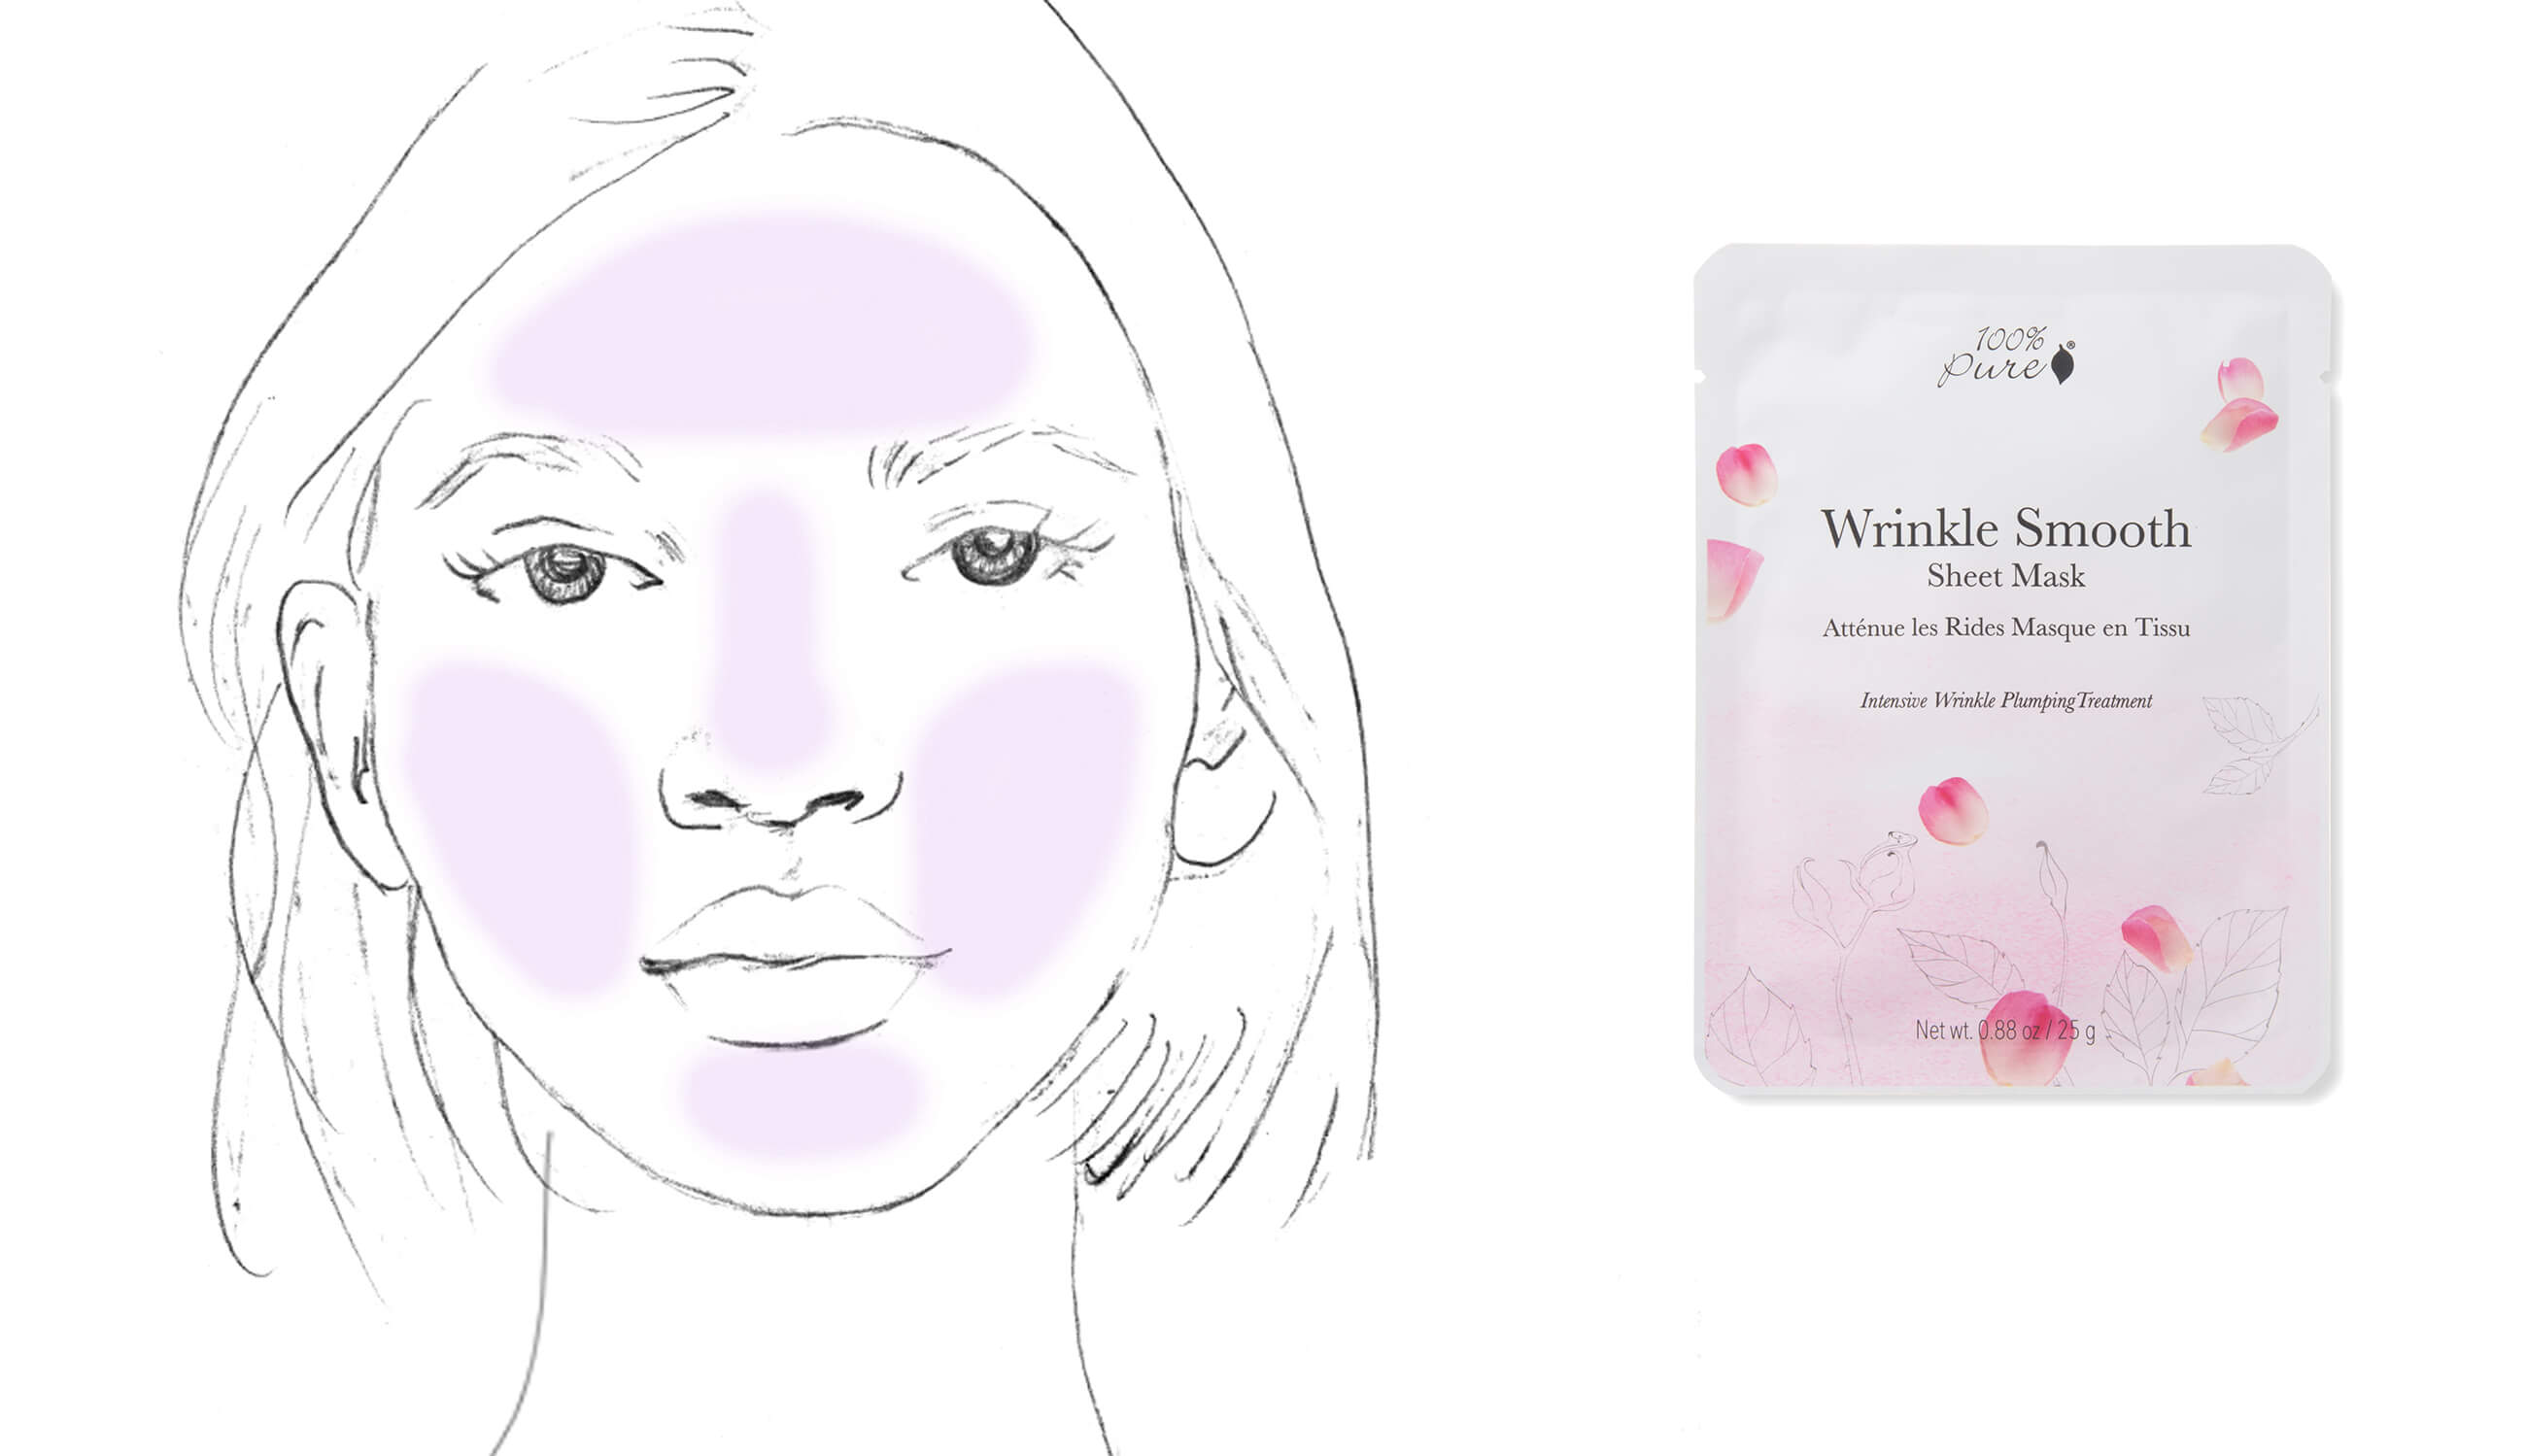 100% Pure Wrinkle Smooth Mask